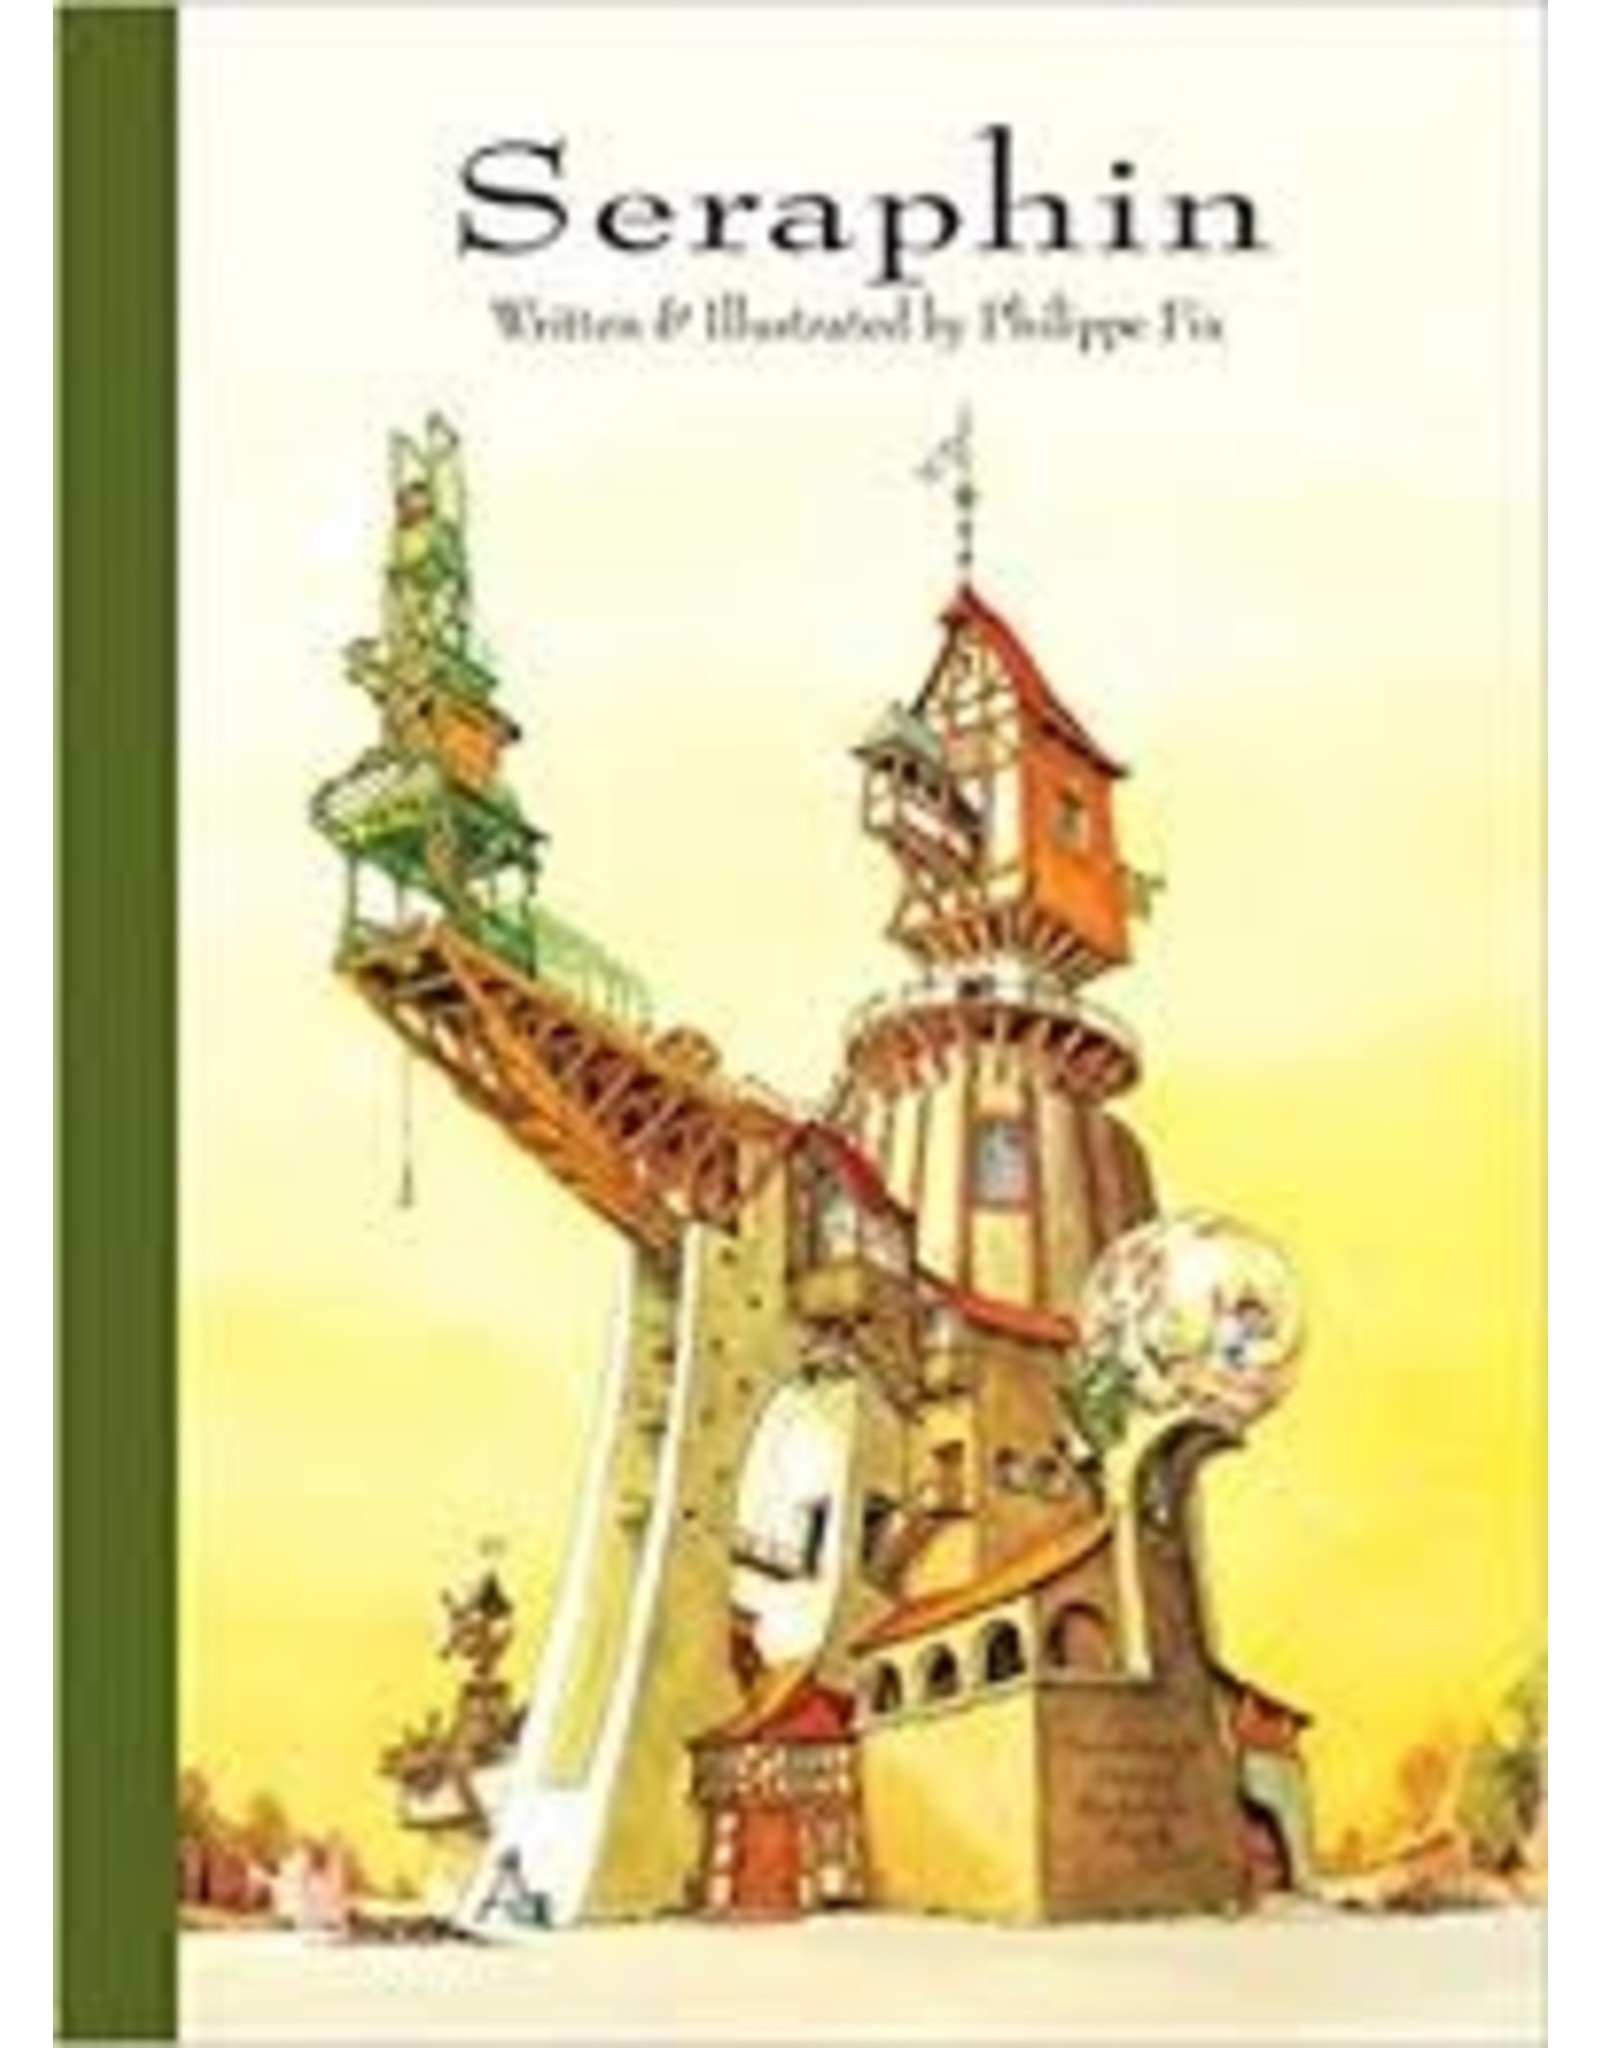 Books Seraphin Written & Illustrated by Philippe Fix  Translated by Donald Nicholson-Smith